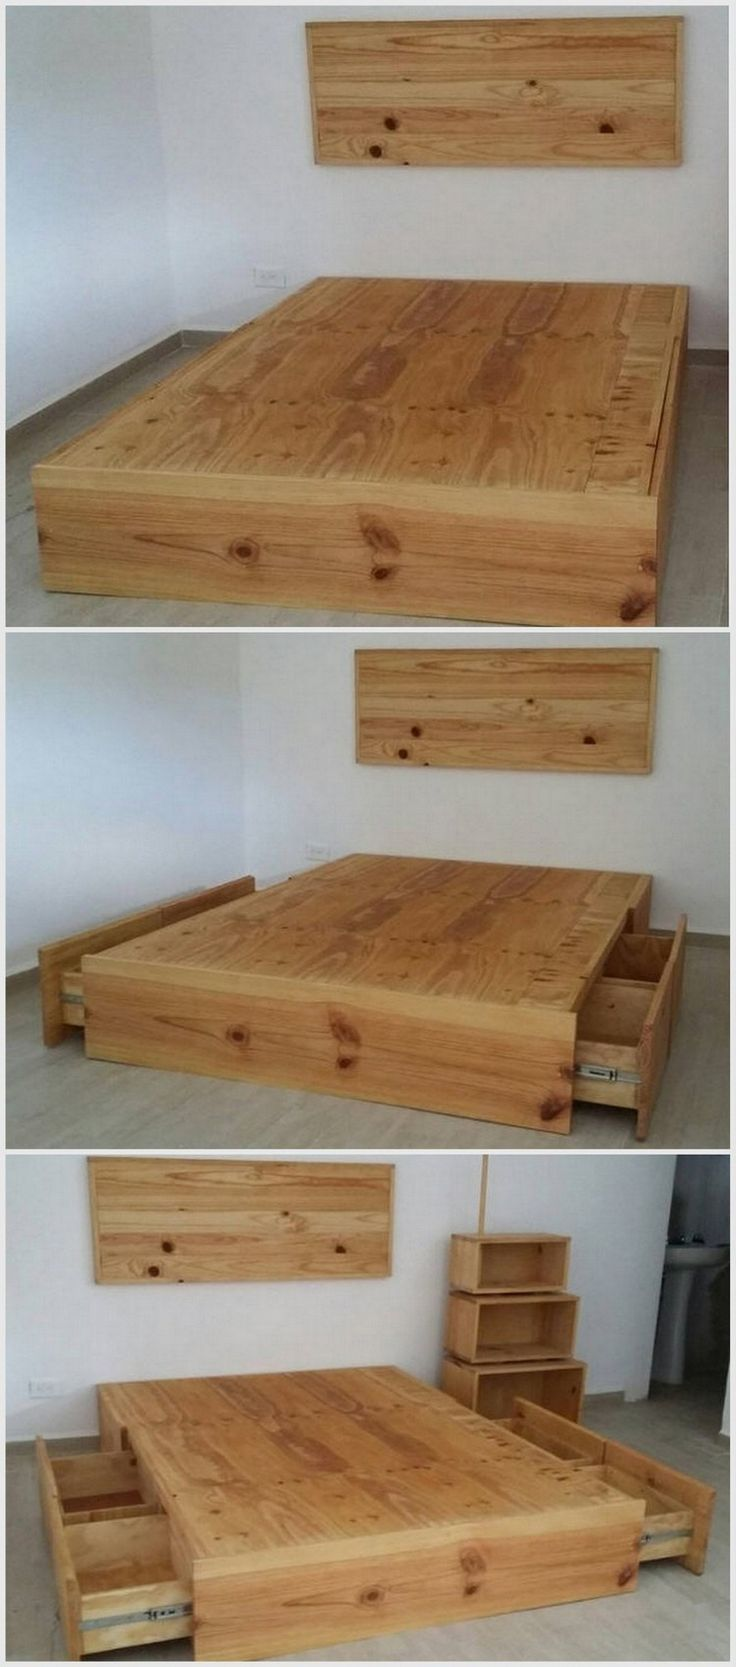 Wooden transport pallets have become increasingly popular for diy - Recycling Ideas With Old Shipping Pallets